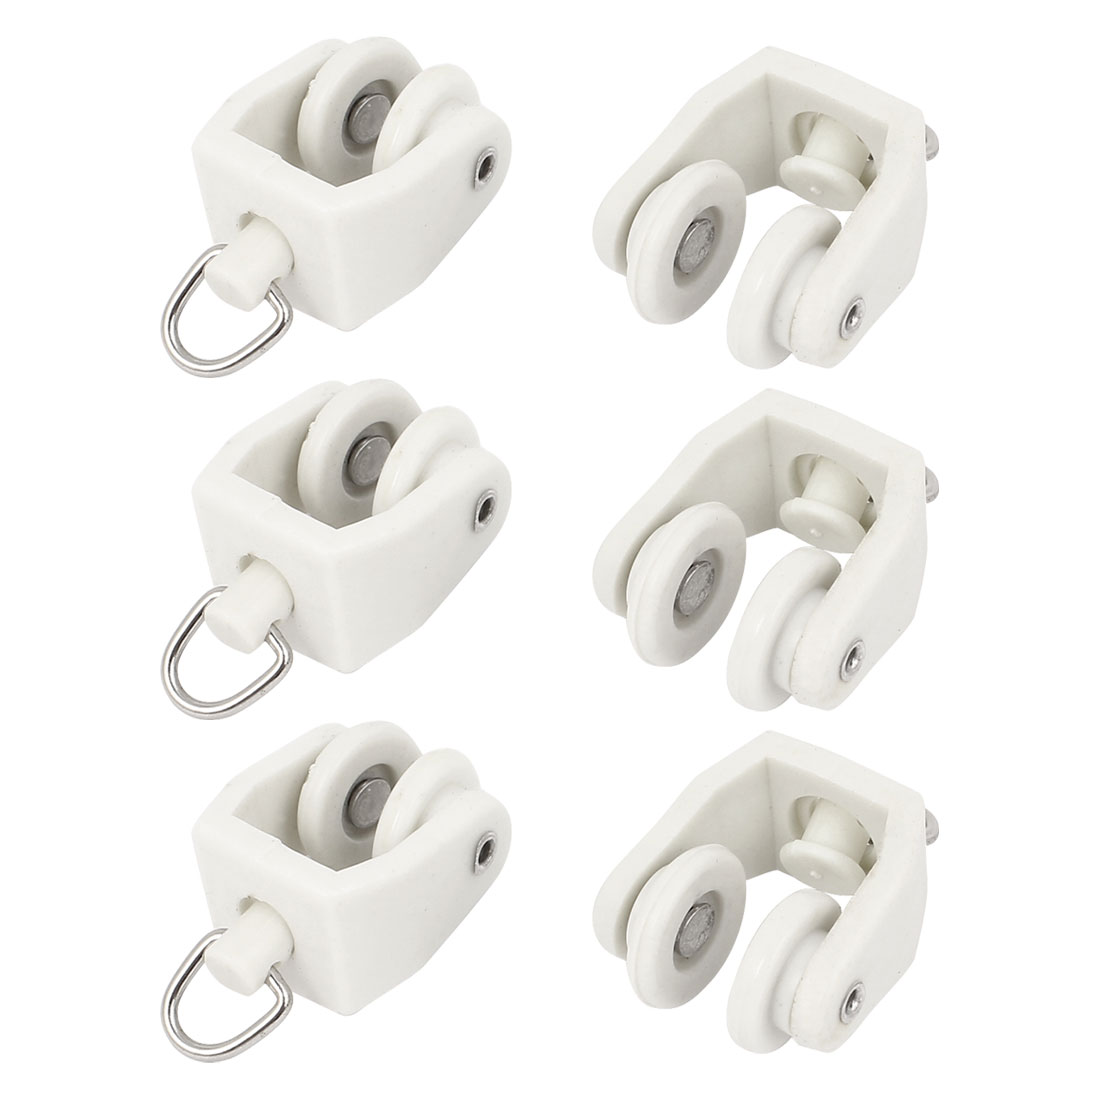 6 Pcs Plastic 13mm Dia Wheel Swivel Ring Curtain Track Carrier Rollers White